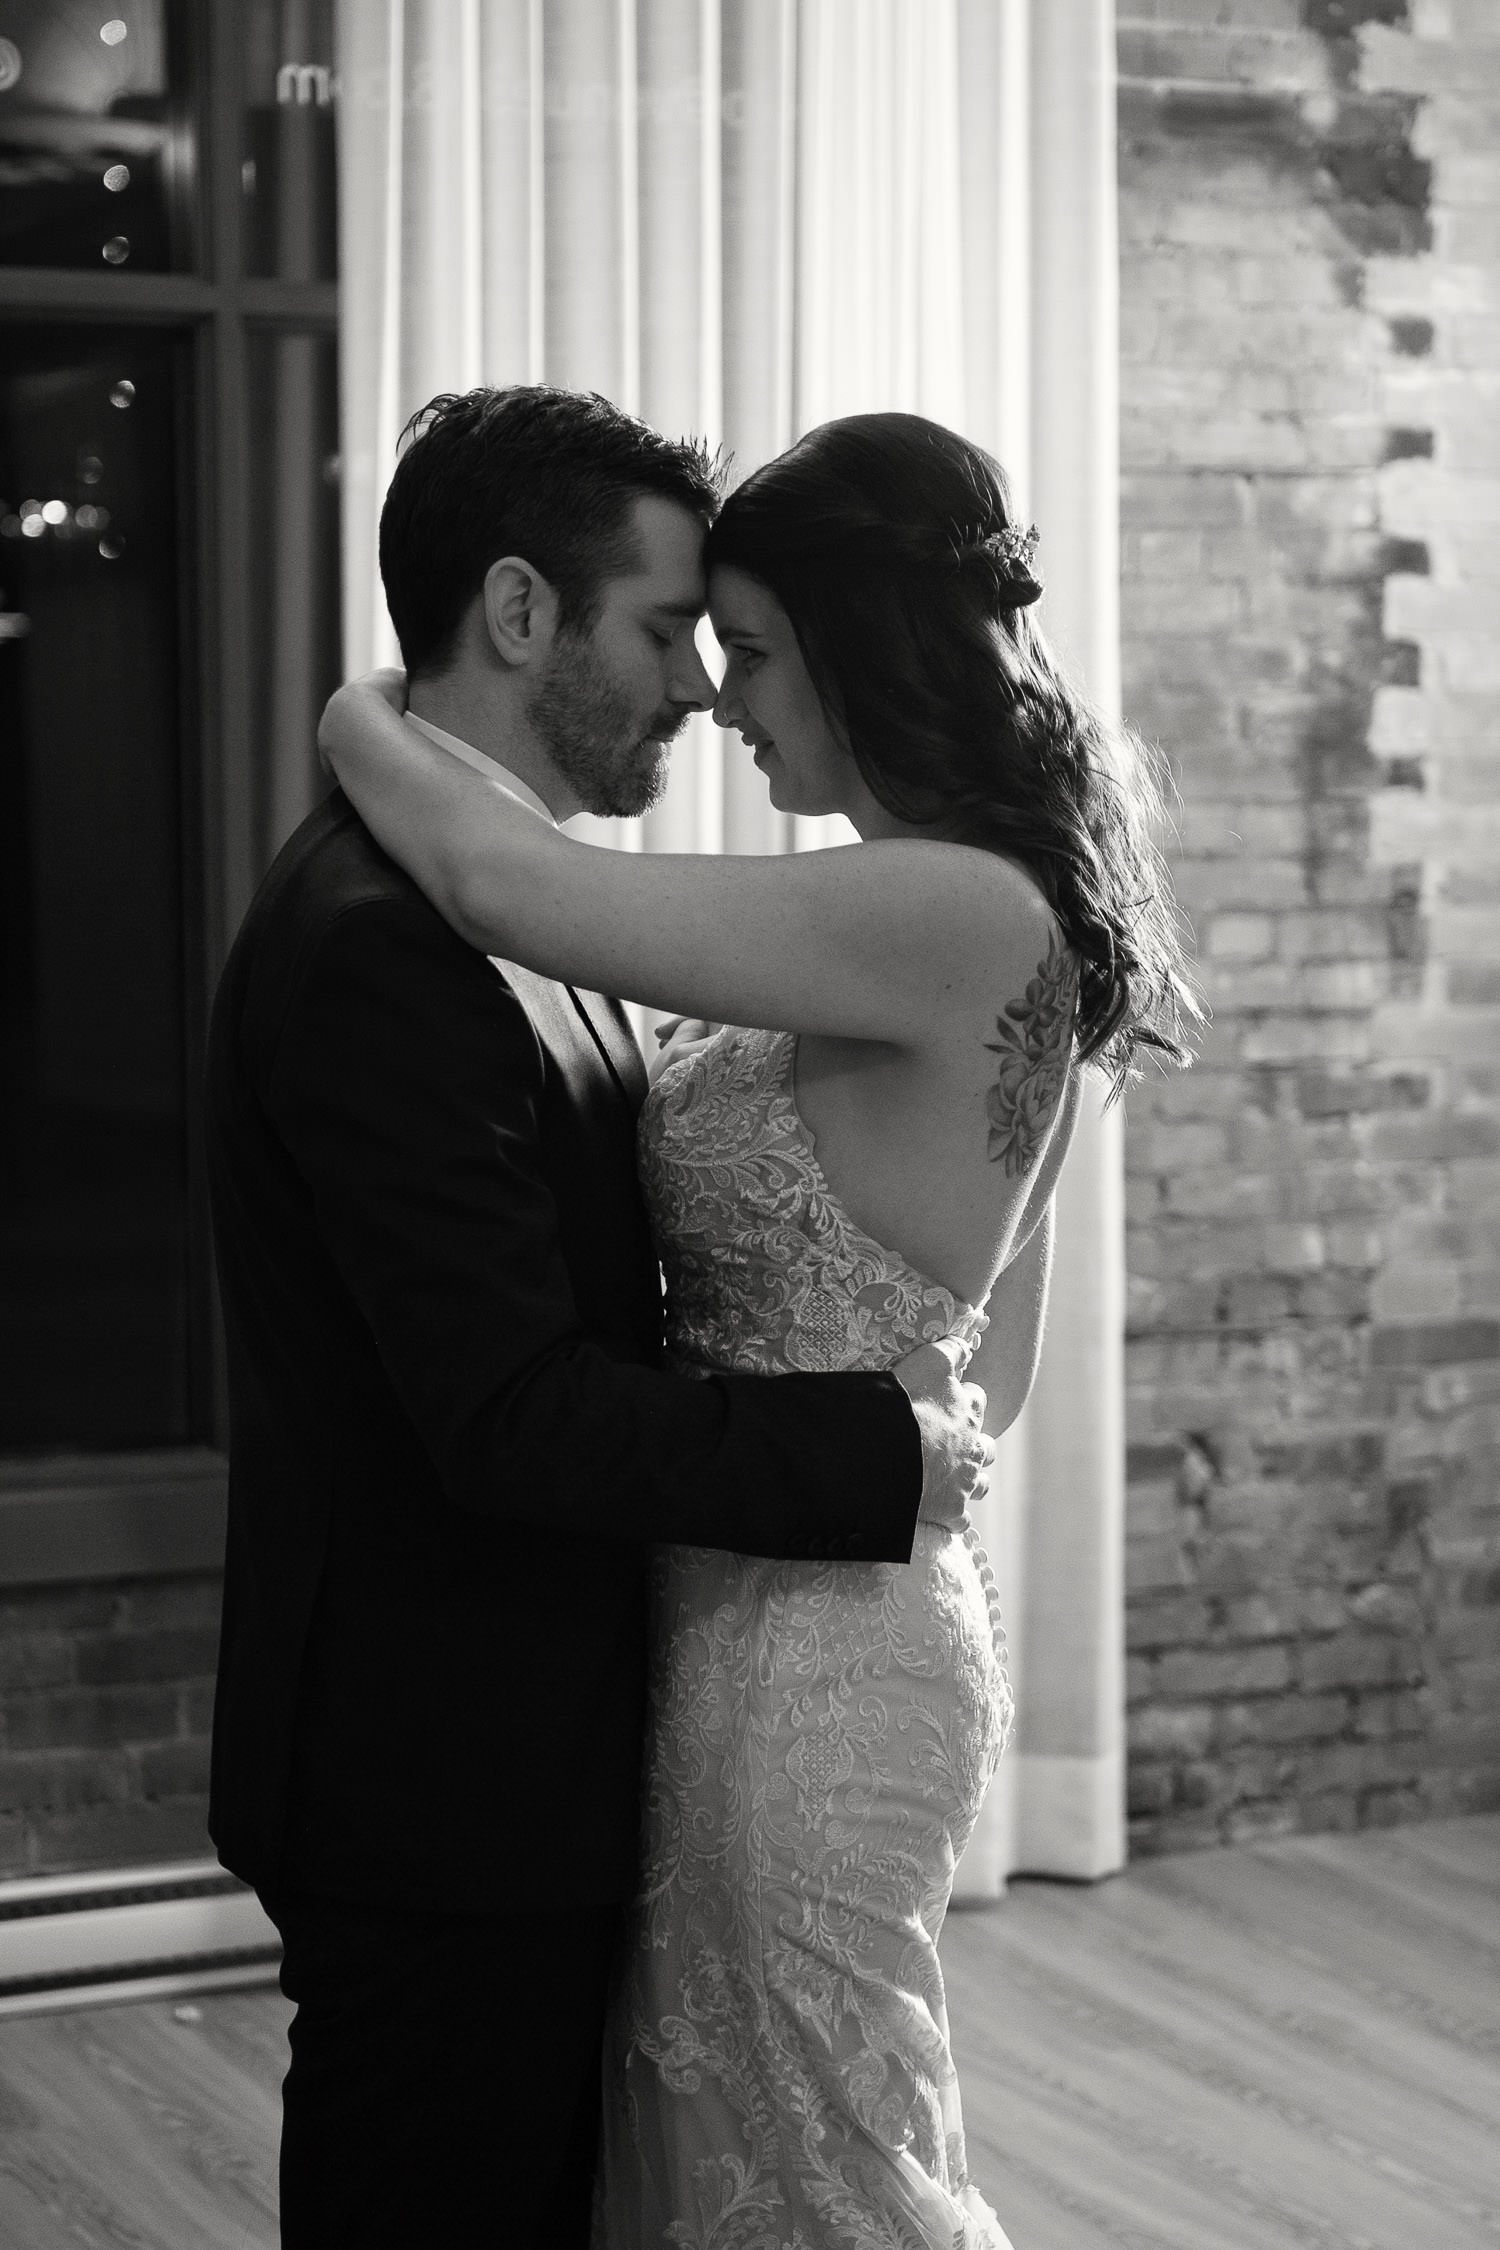 First dance at Venue 308 captured by Calgary wedding photographer Tara Whittaker